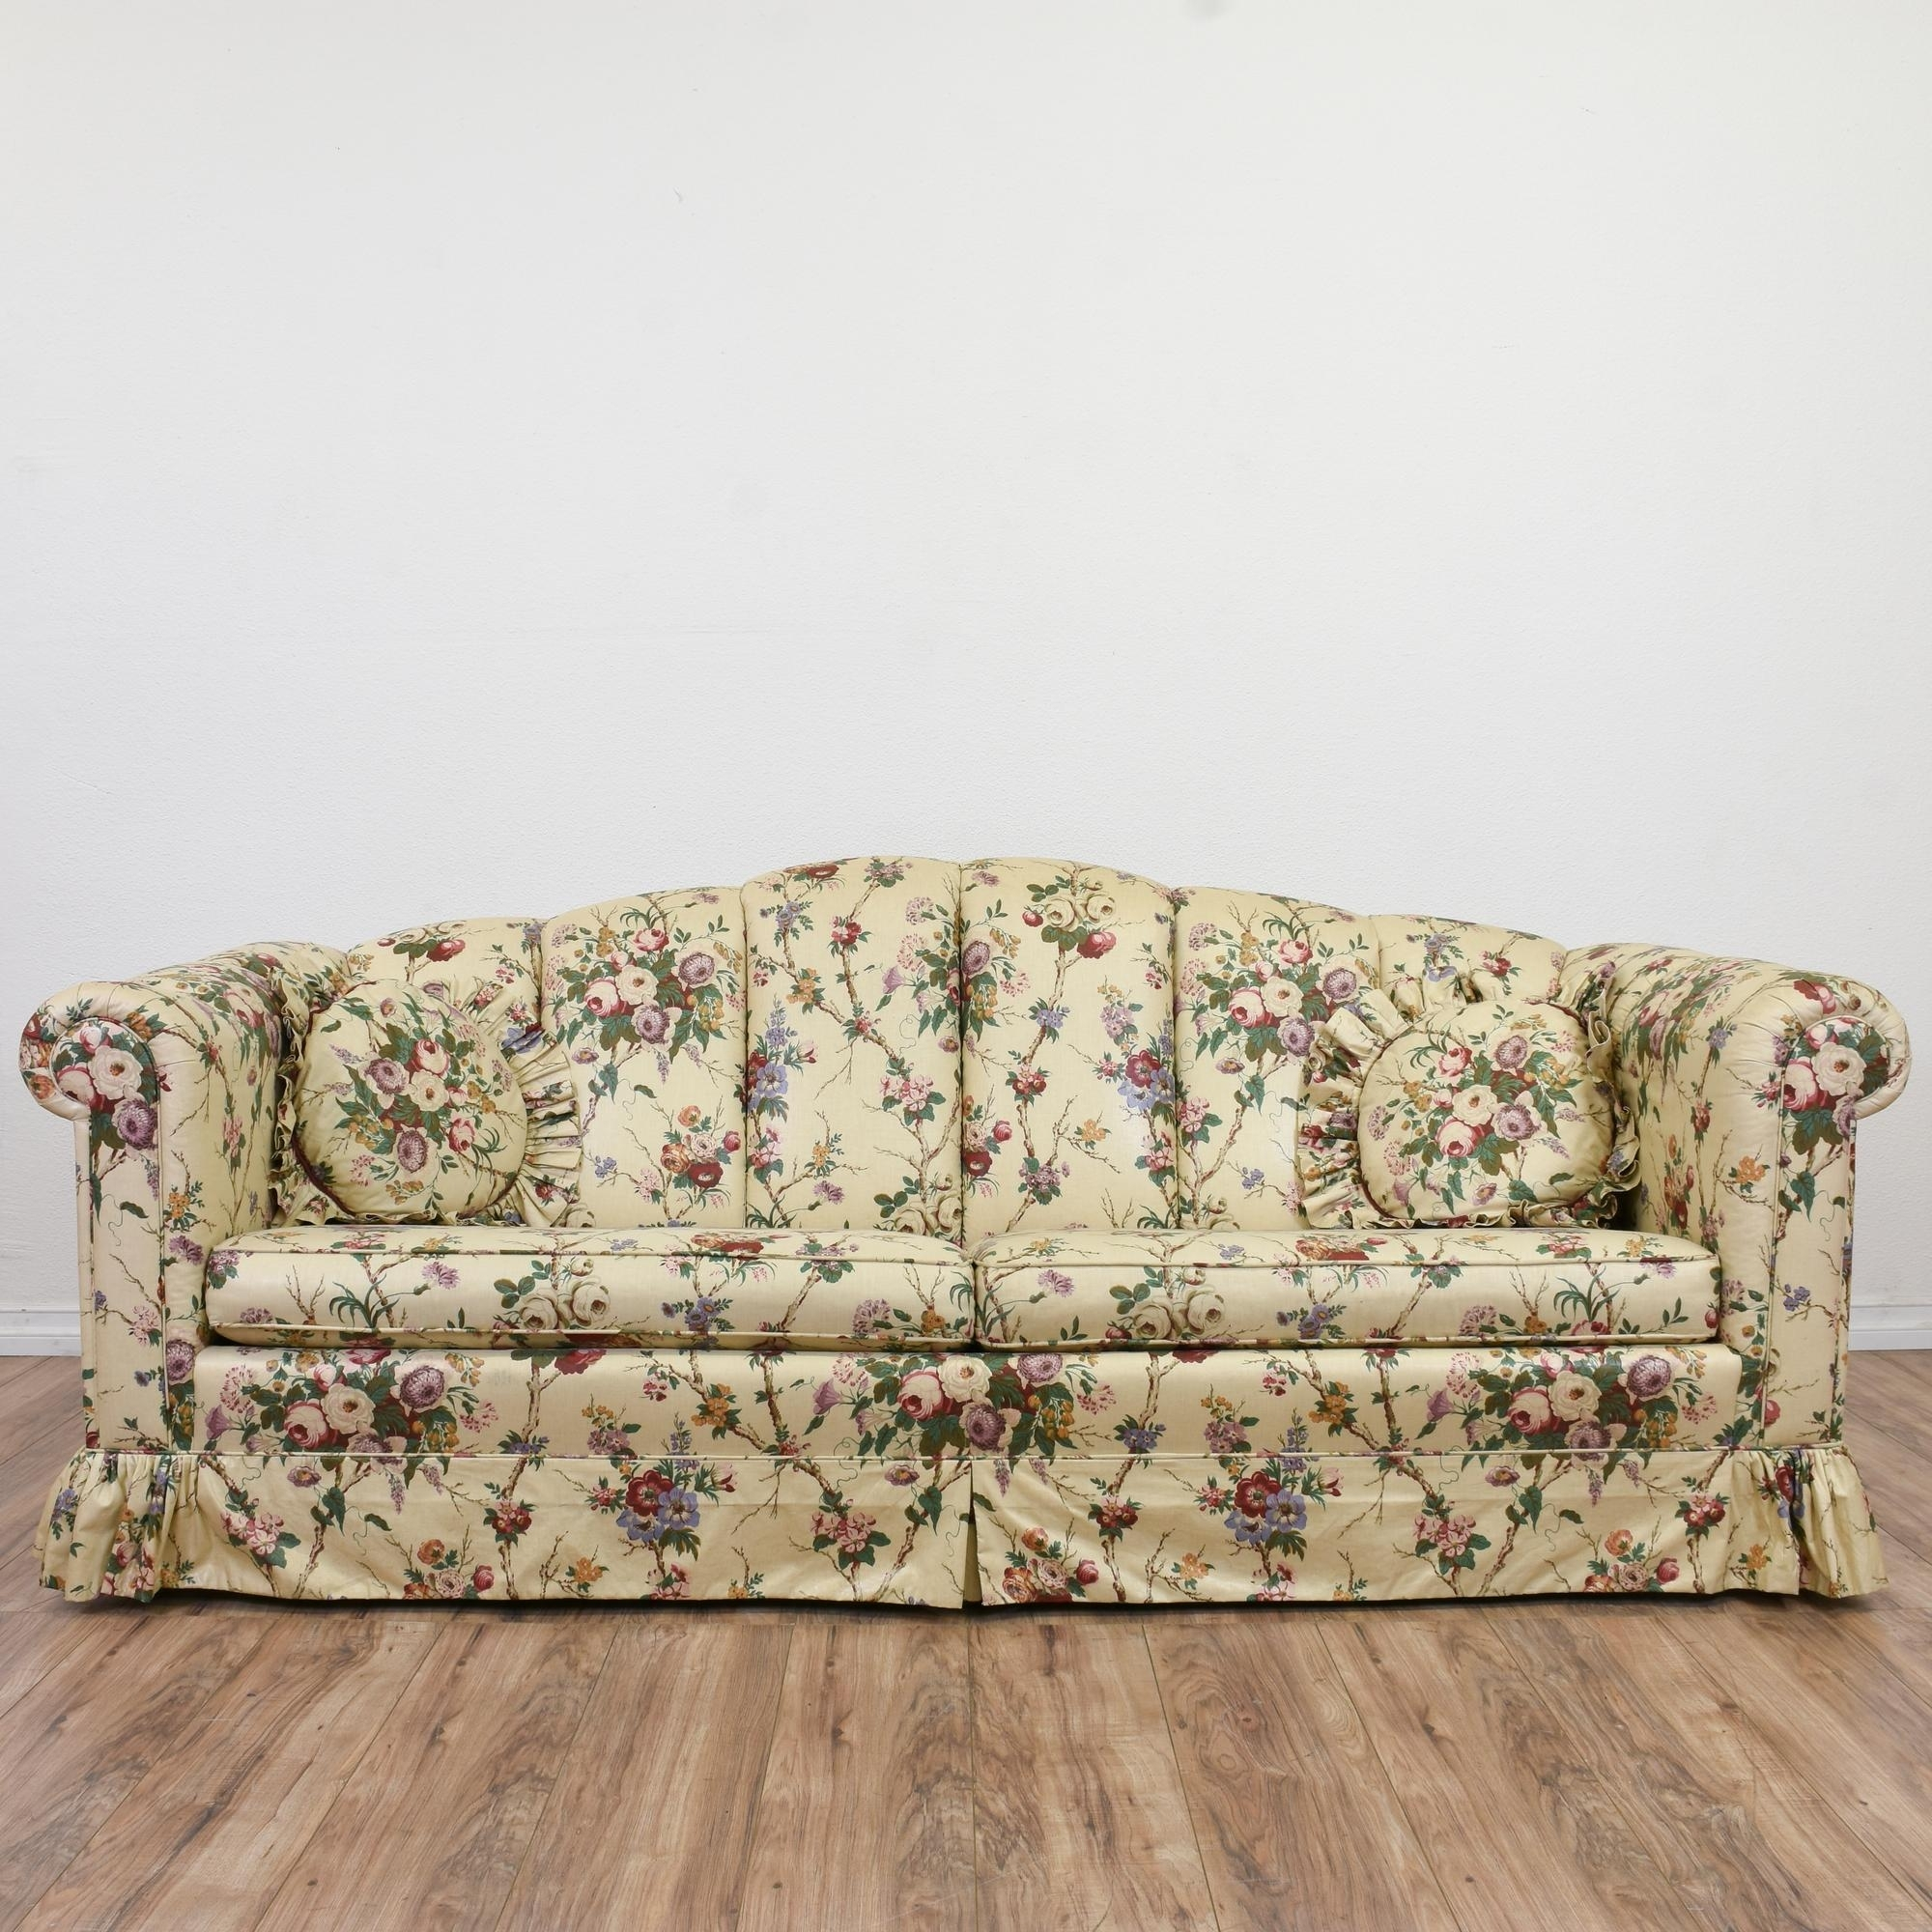 2019 Chintz Sofas And Chairs For This Sofa Is Upholstered In A Durable Off White Beige, Pink And (View 1 of 20)